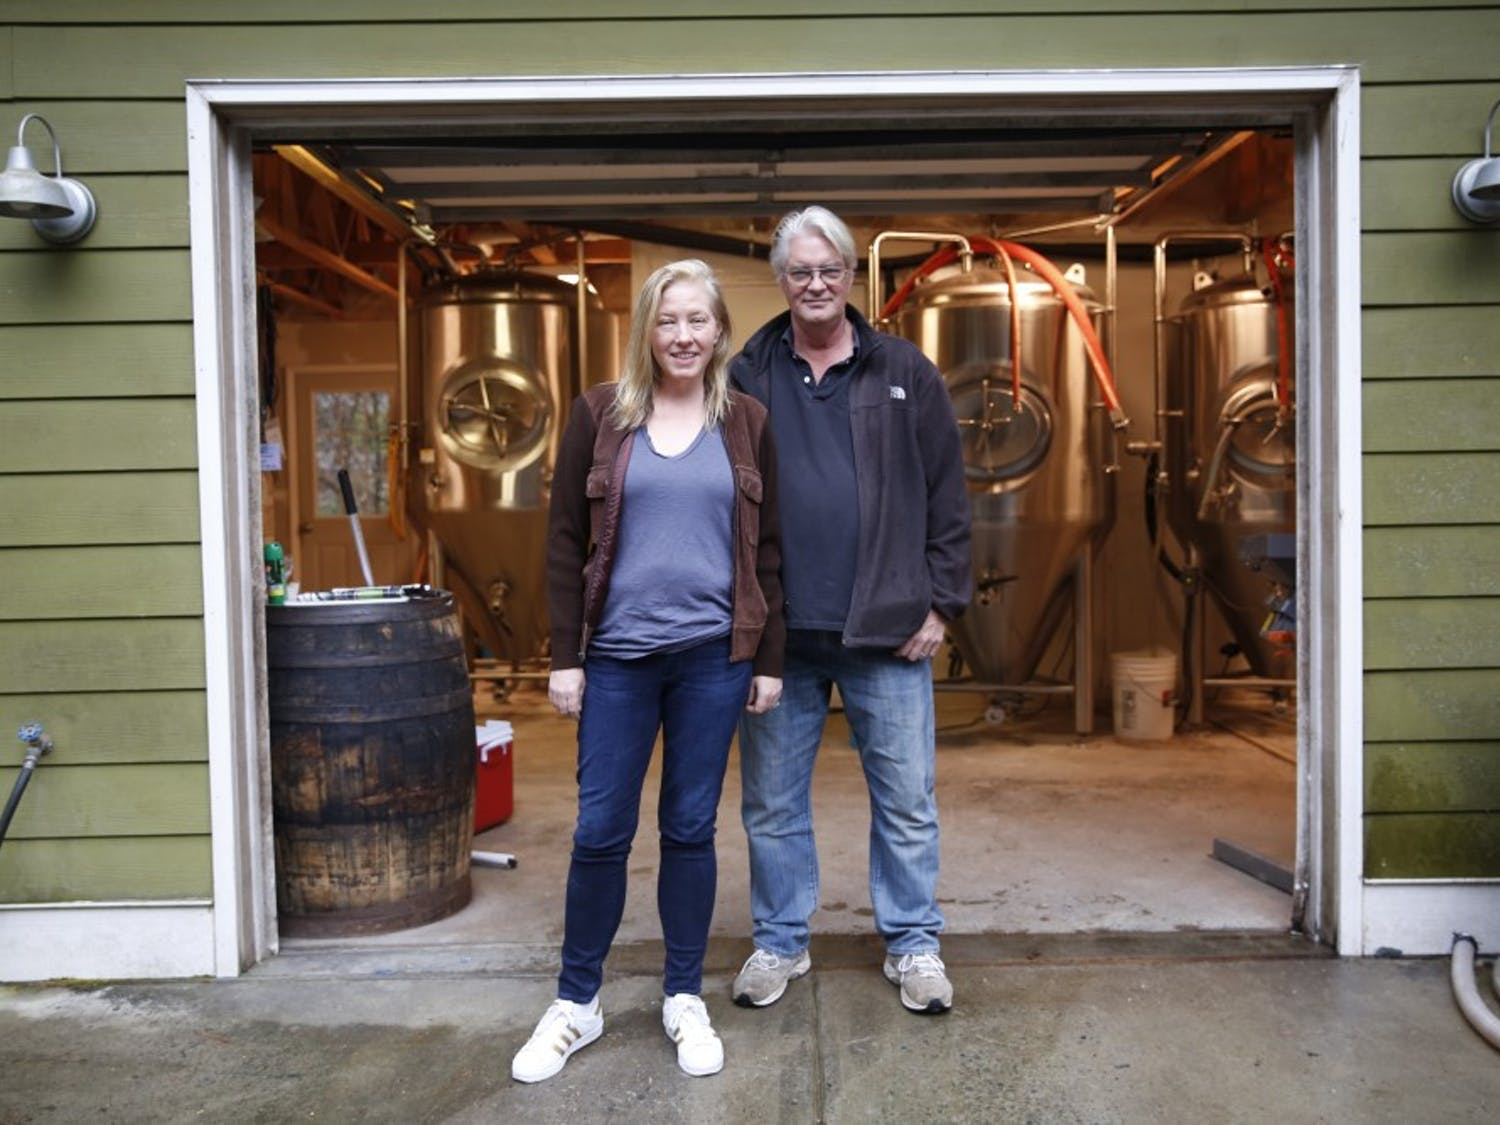 Beth Boylan (left) and Tim Harper (right) are the co-founders of the Durham-based Starpoint Brewery, one of many local breweries in the area growing out of the recent explosion of brewery culture.